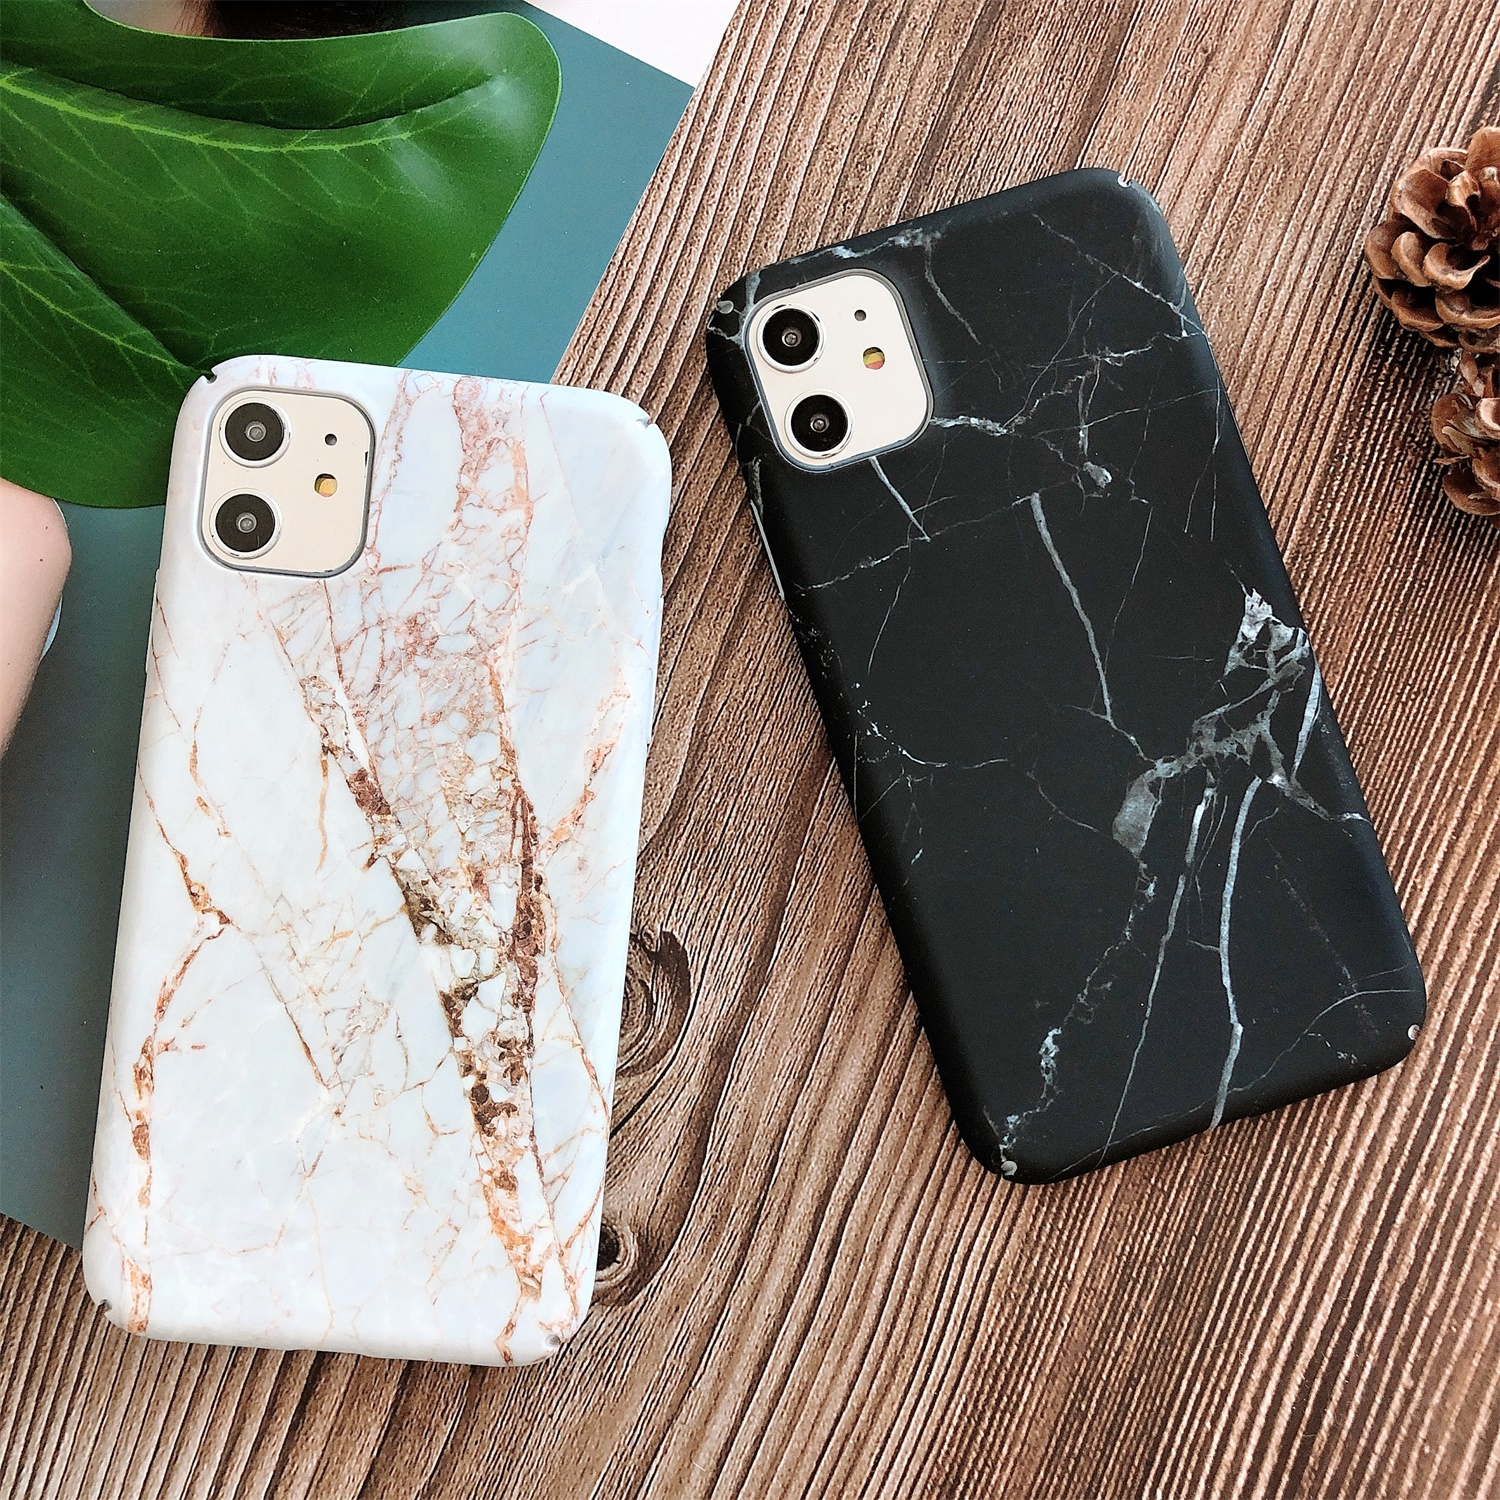 LISCN PC Marble Phone Case for iPhone XR 6 6sPlus 11 11Pro Max 7Plus 8Plus Xs Max 7 8 X Xs PC Anti-fall Protect Phone Case(China)